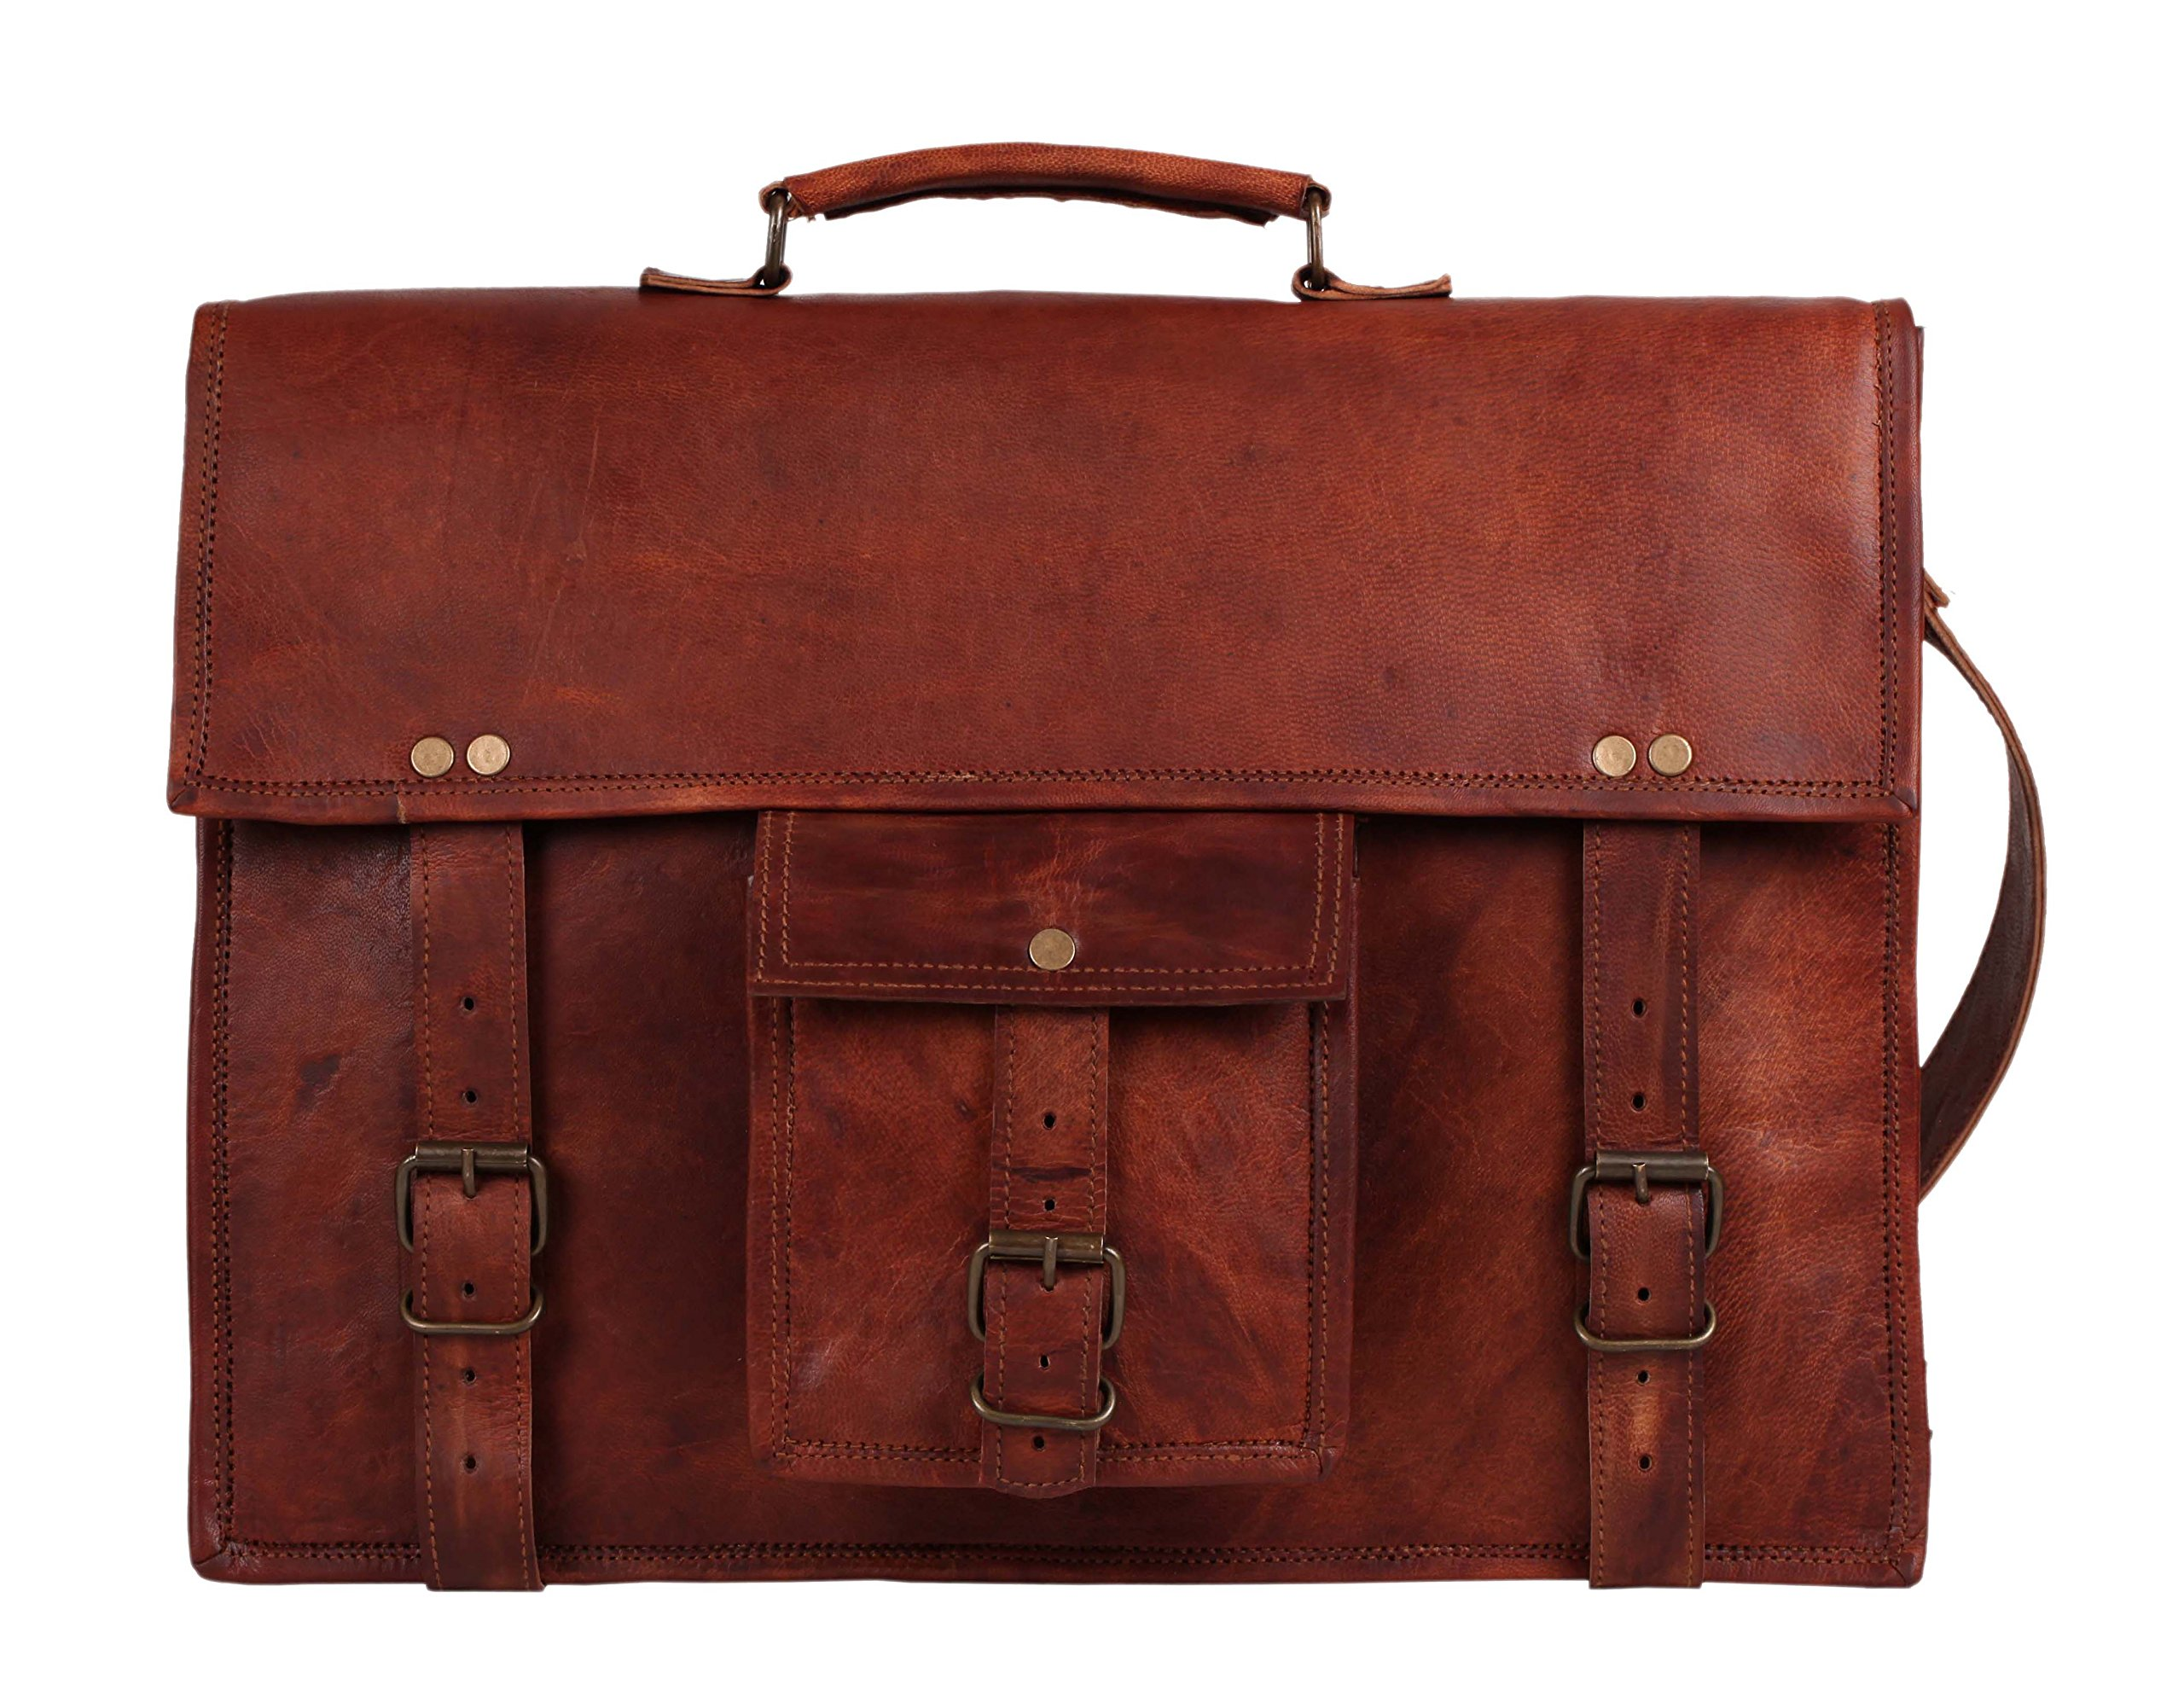 18 Inch GENUINE LEATHER Rustic Crossbody Messenger Courier Satchel Bag Gift Men Women ~ Business Work Briefcase Carry Laptop Computer Book Handmade Rugged Distressed ~ Everyday Office College School